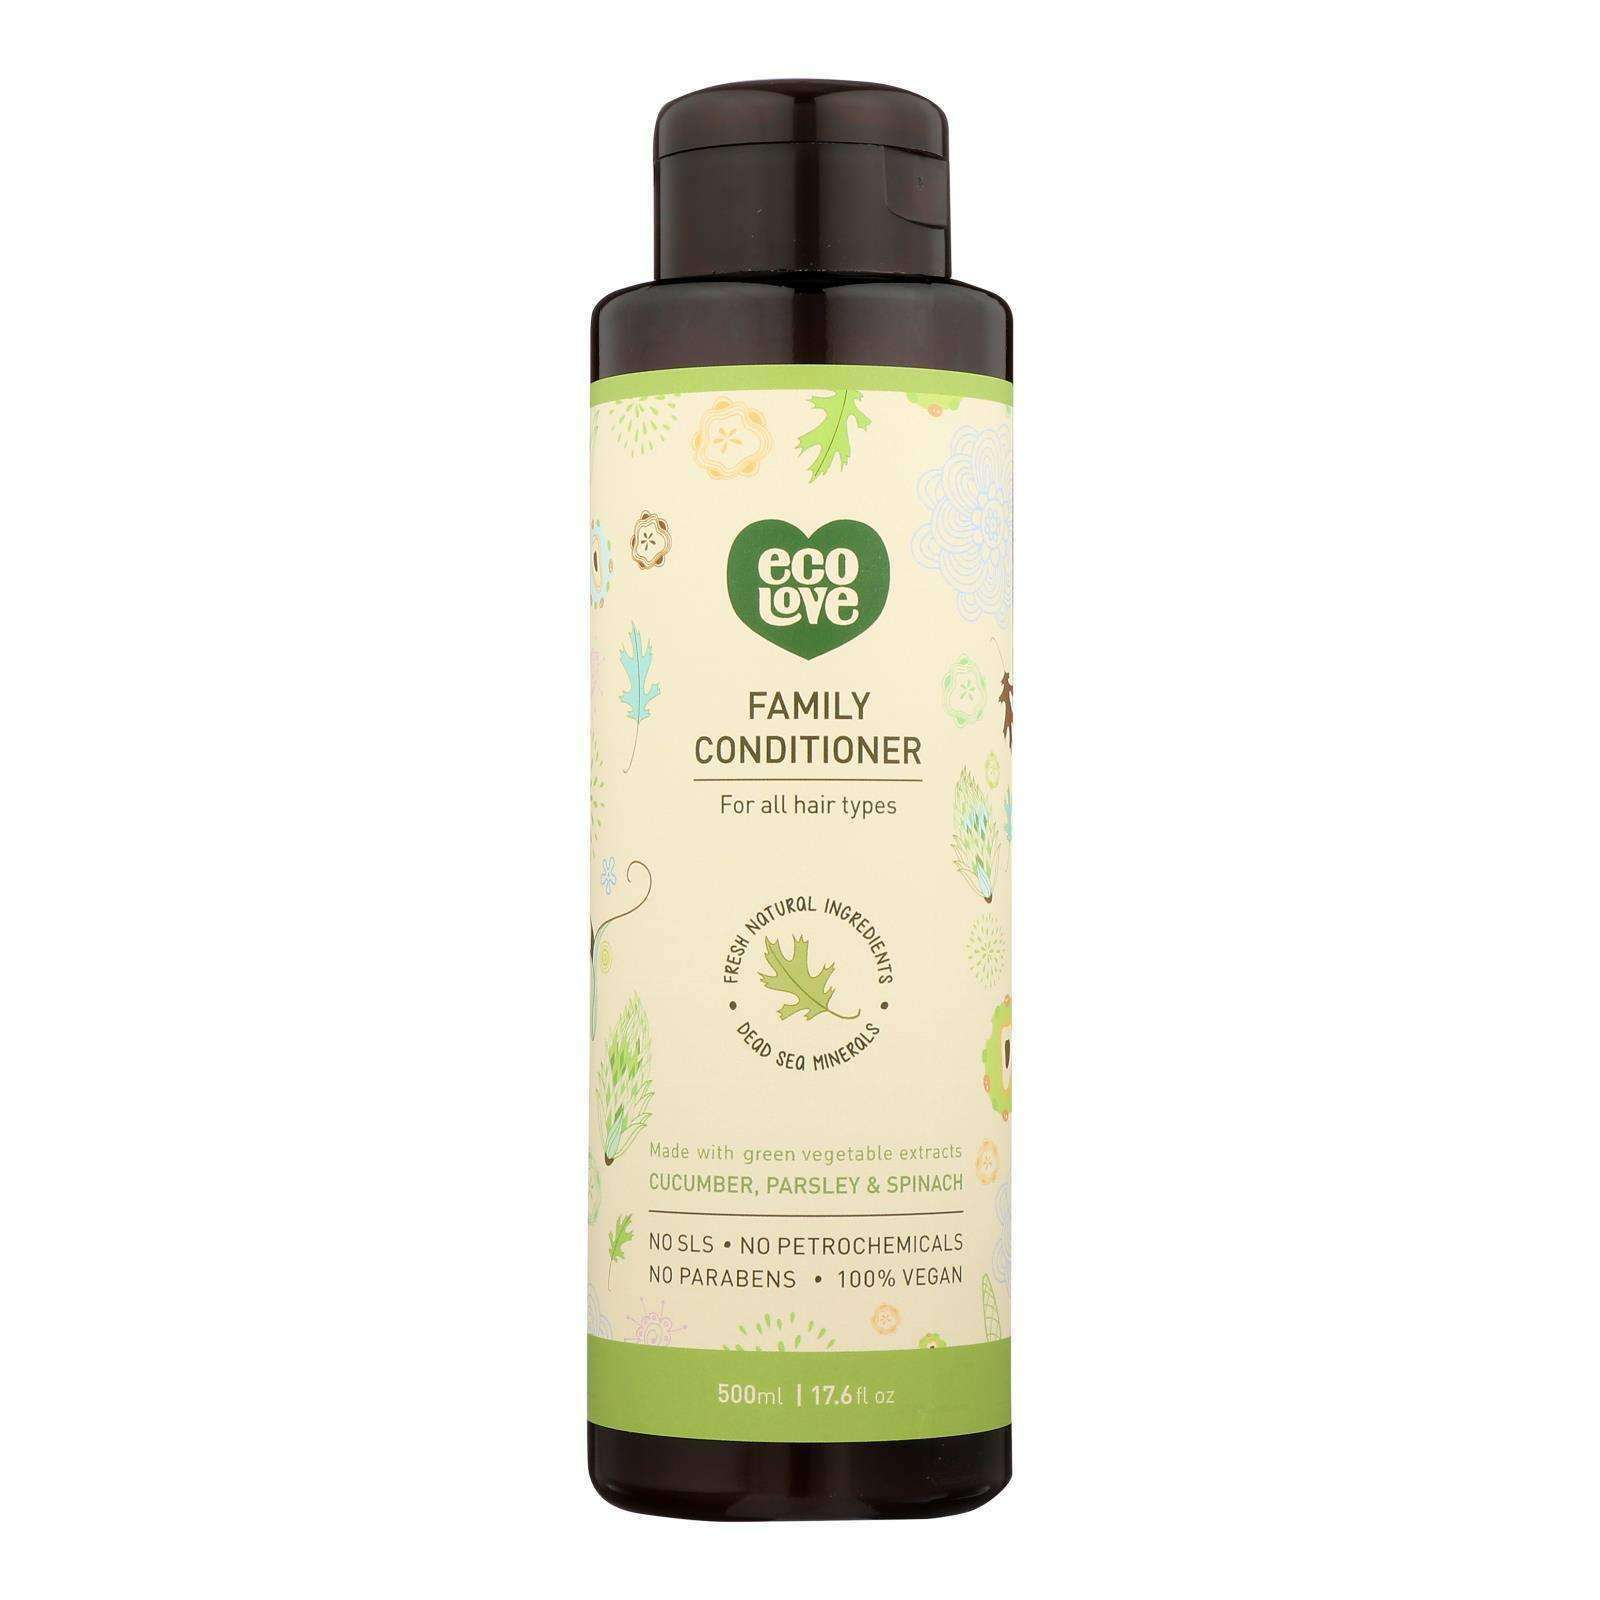 Ecolove Conditioner - Green Vegetables Family Conditioner For All Hair Types - Case Of 1 - 17.6 Fl Oz. - BeeGreen